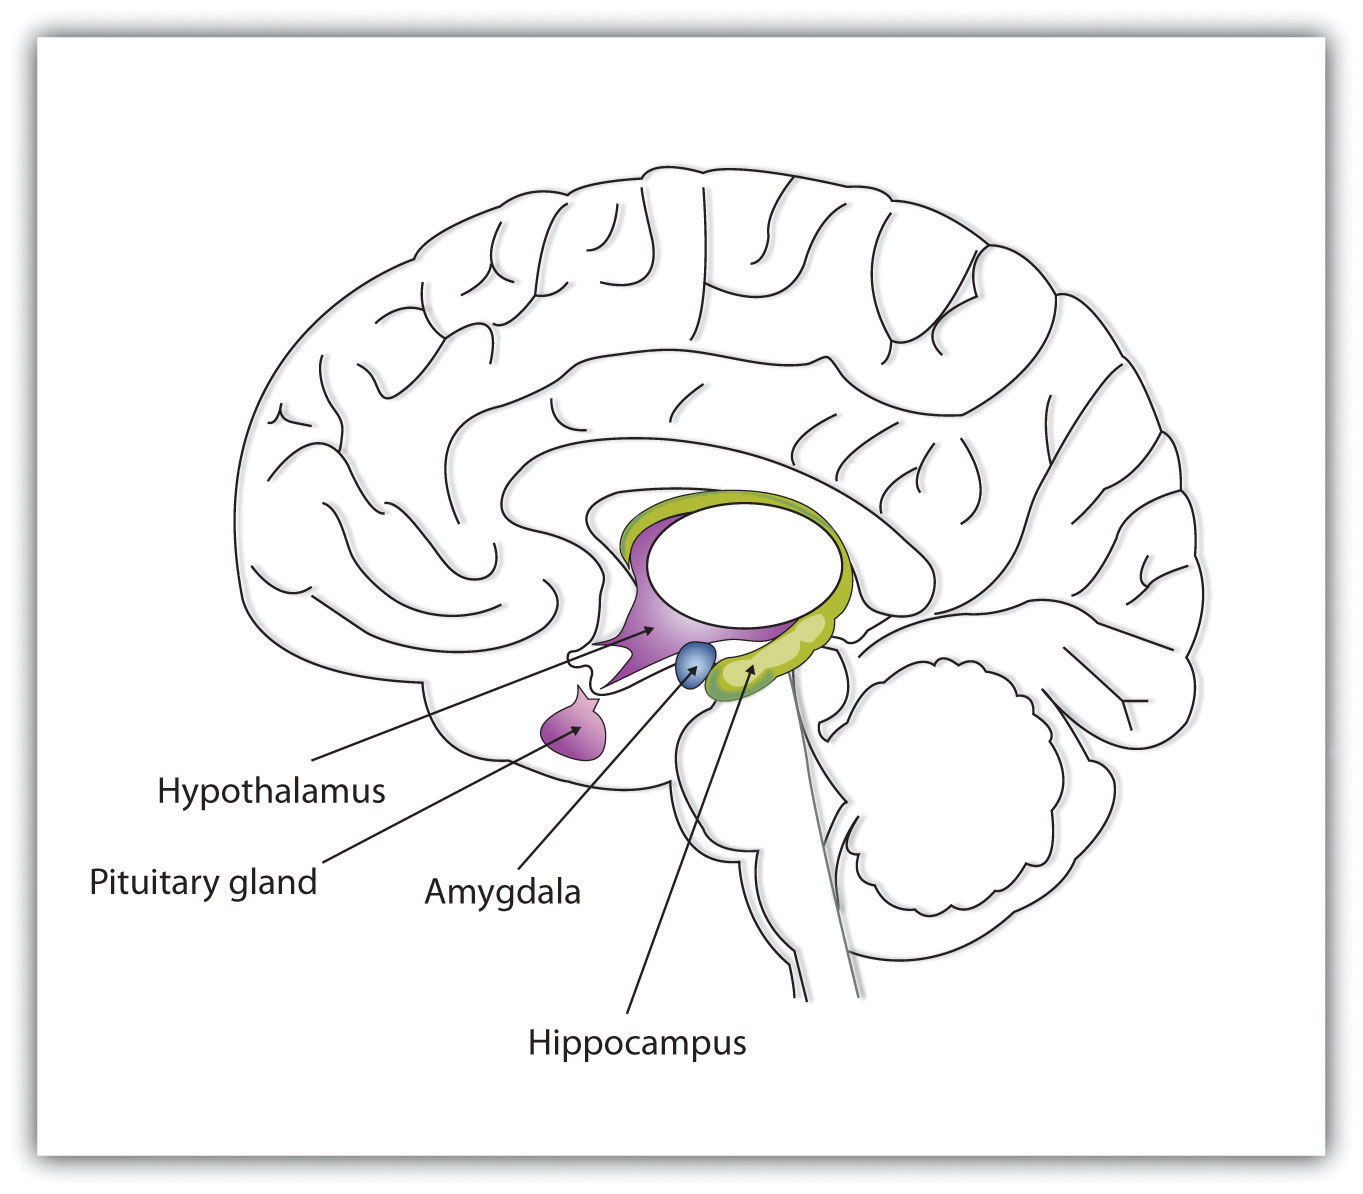 Brain Clip Art furthermore Nervous System Brain furthermore Brain Drawing also anatomychartee likewise Brain Regions. on brain diagram coloring page